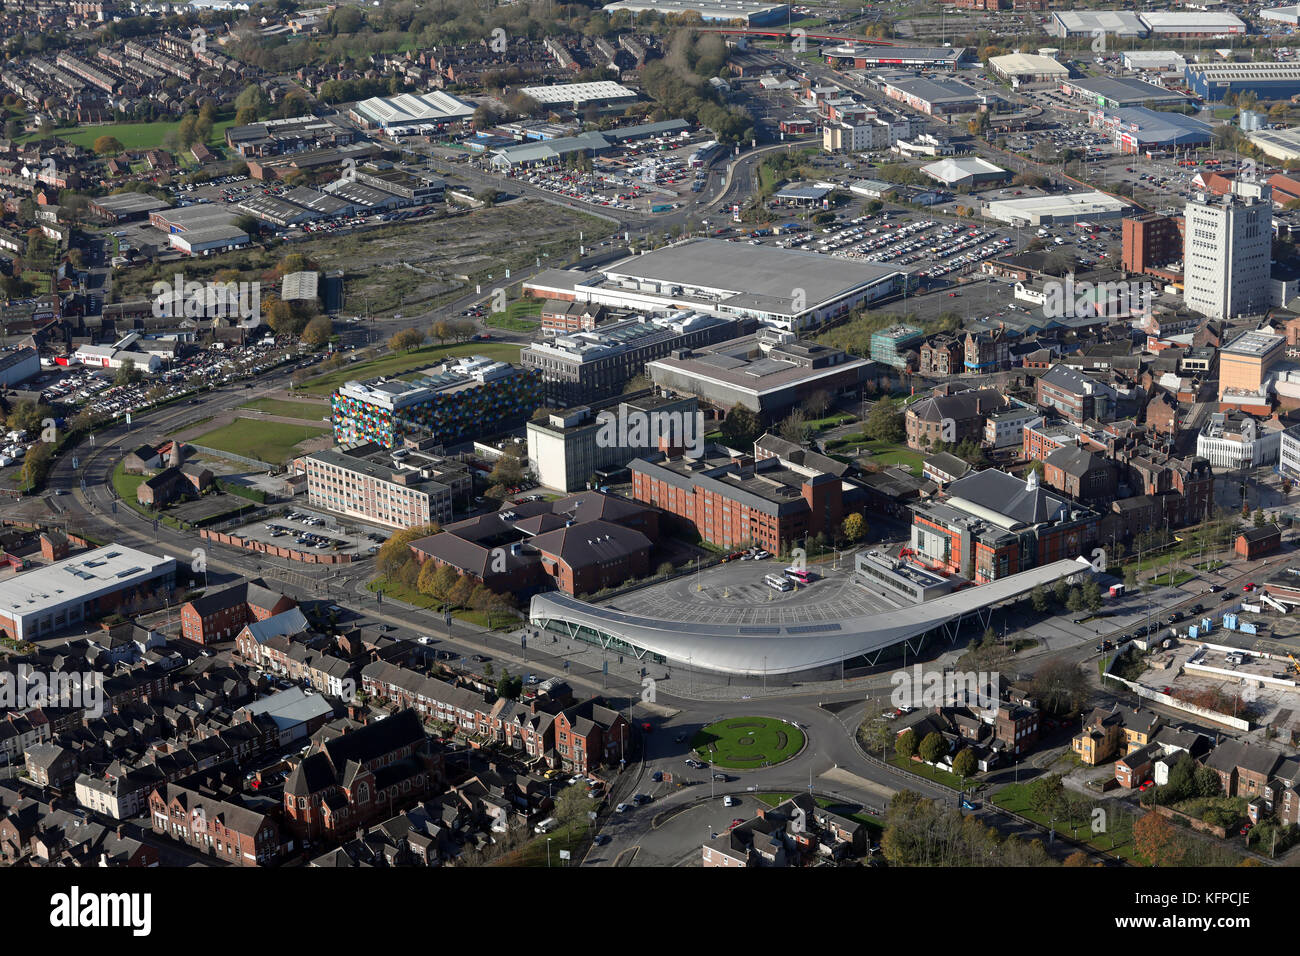 aerial view of Stoke city centre, Staffordshire, UK - Stock Image